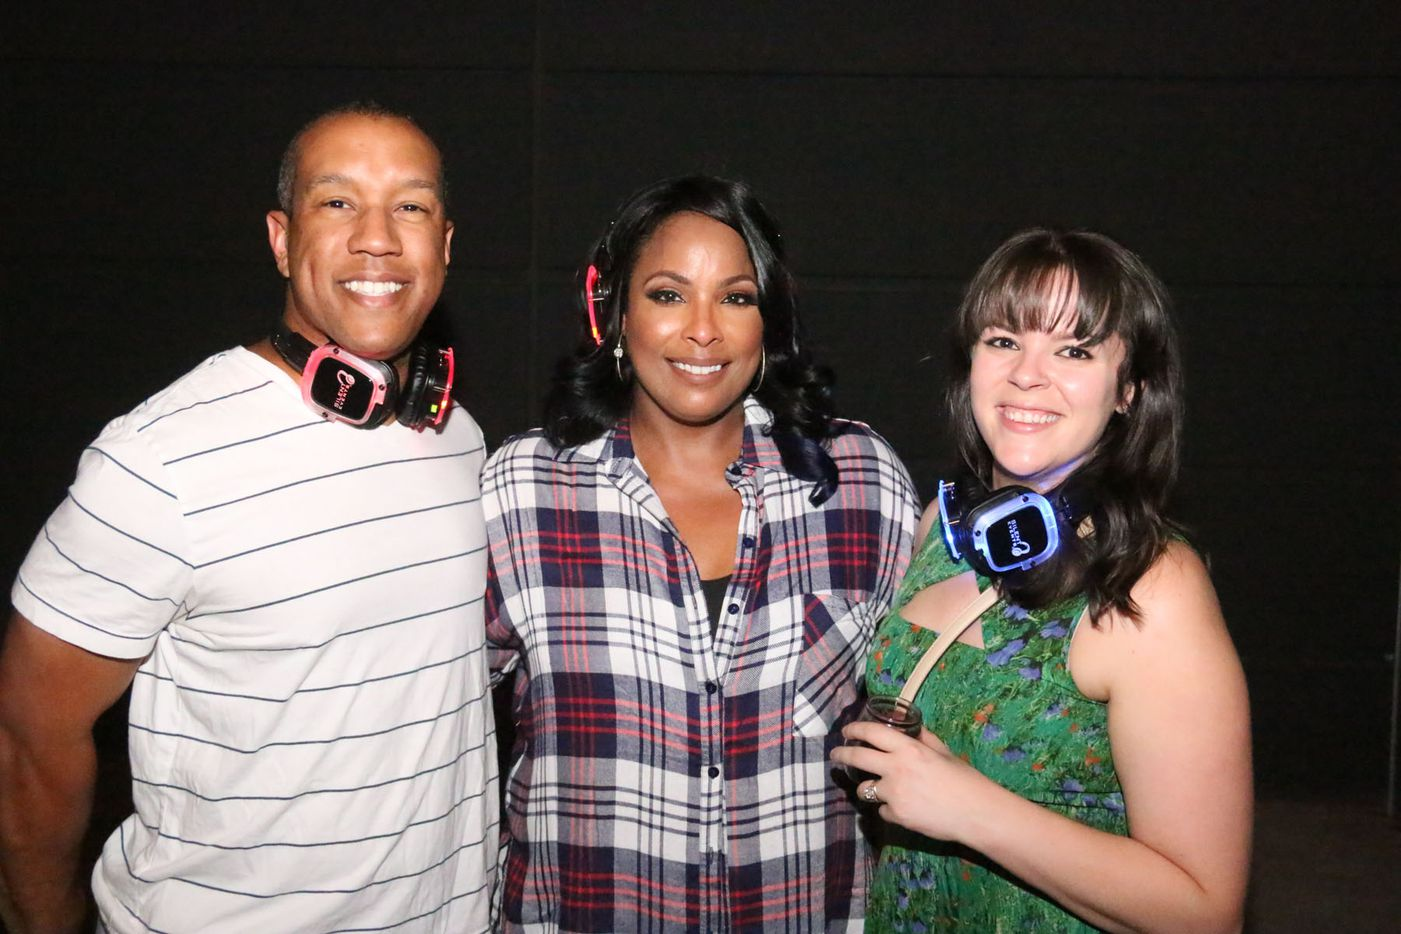 Pin Drop Disco on Saturday at Strauss Square in downtown Dallas featured DJ Spinderella (center), Sarah Jaffe and more. The event was a silent dance party, with attendees enjoying the music via headphones.